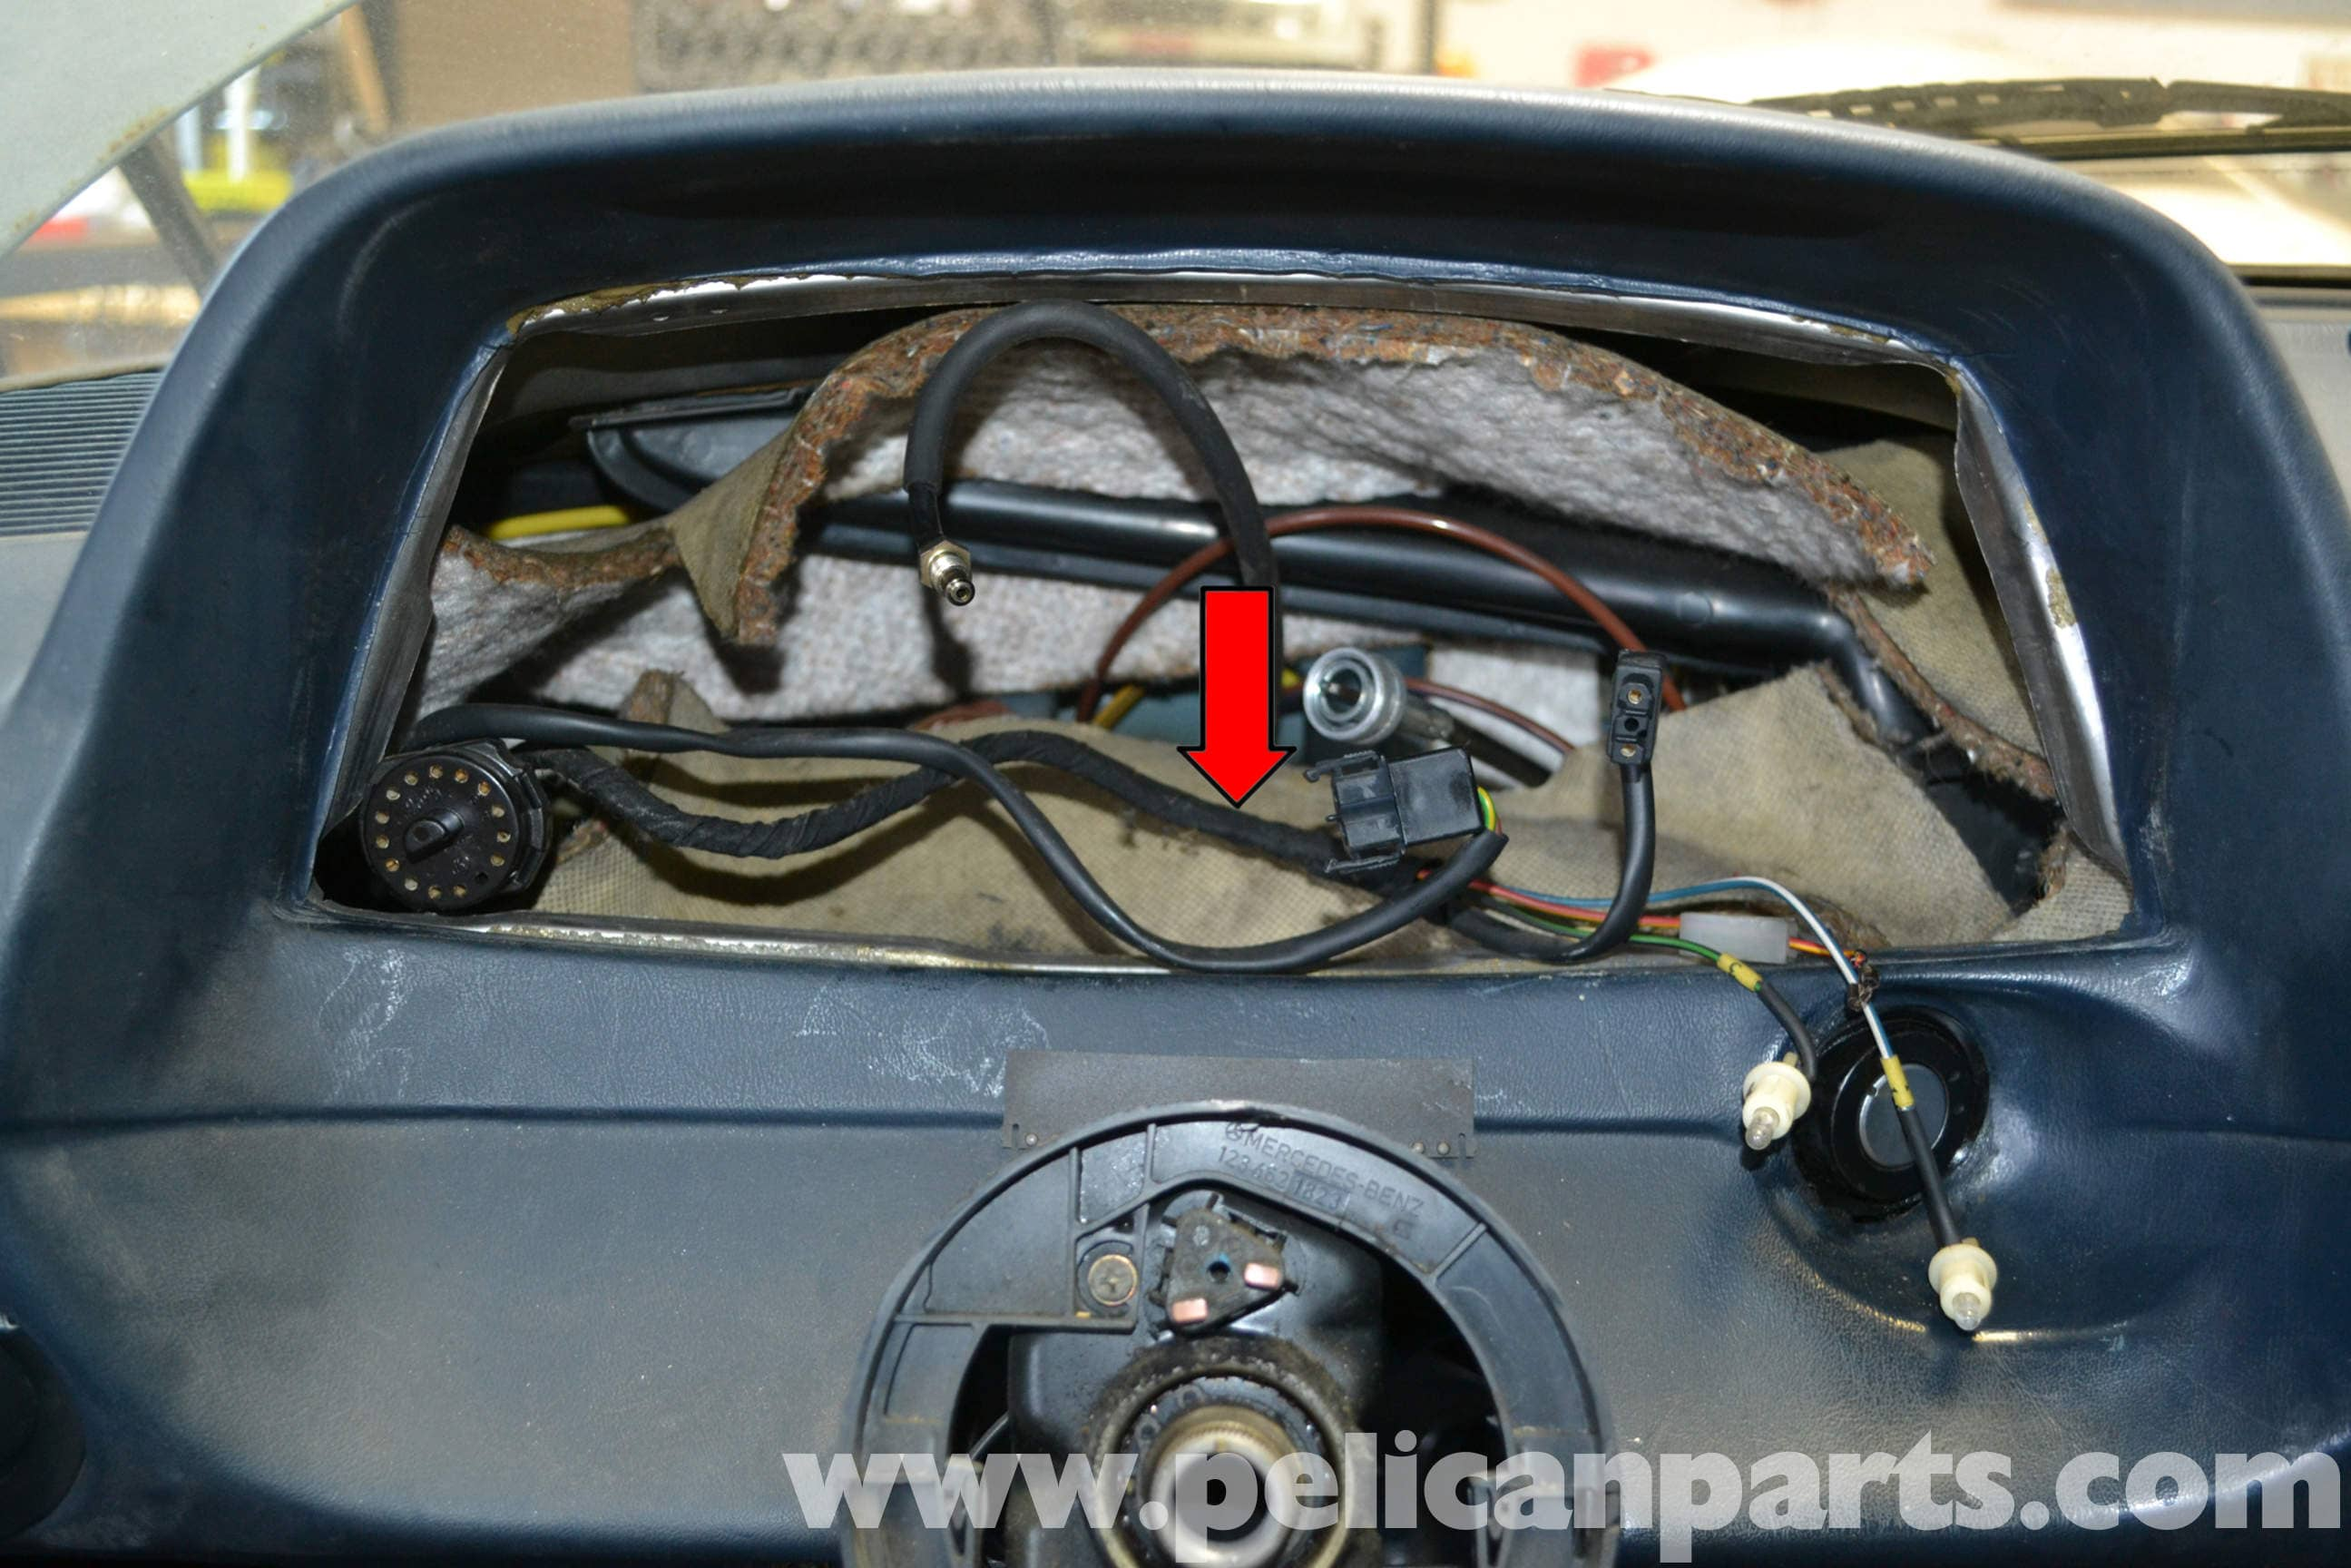 Mercedes-Benz W123 Windshield Wiper Relay Replacement | W123